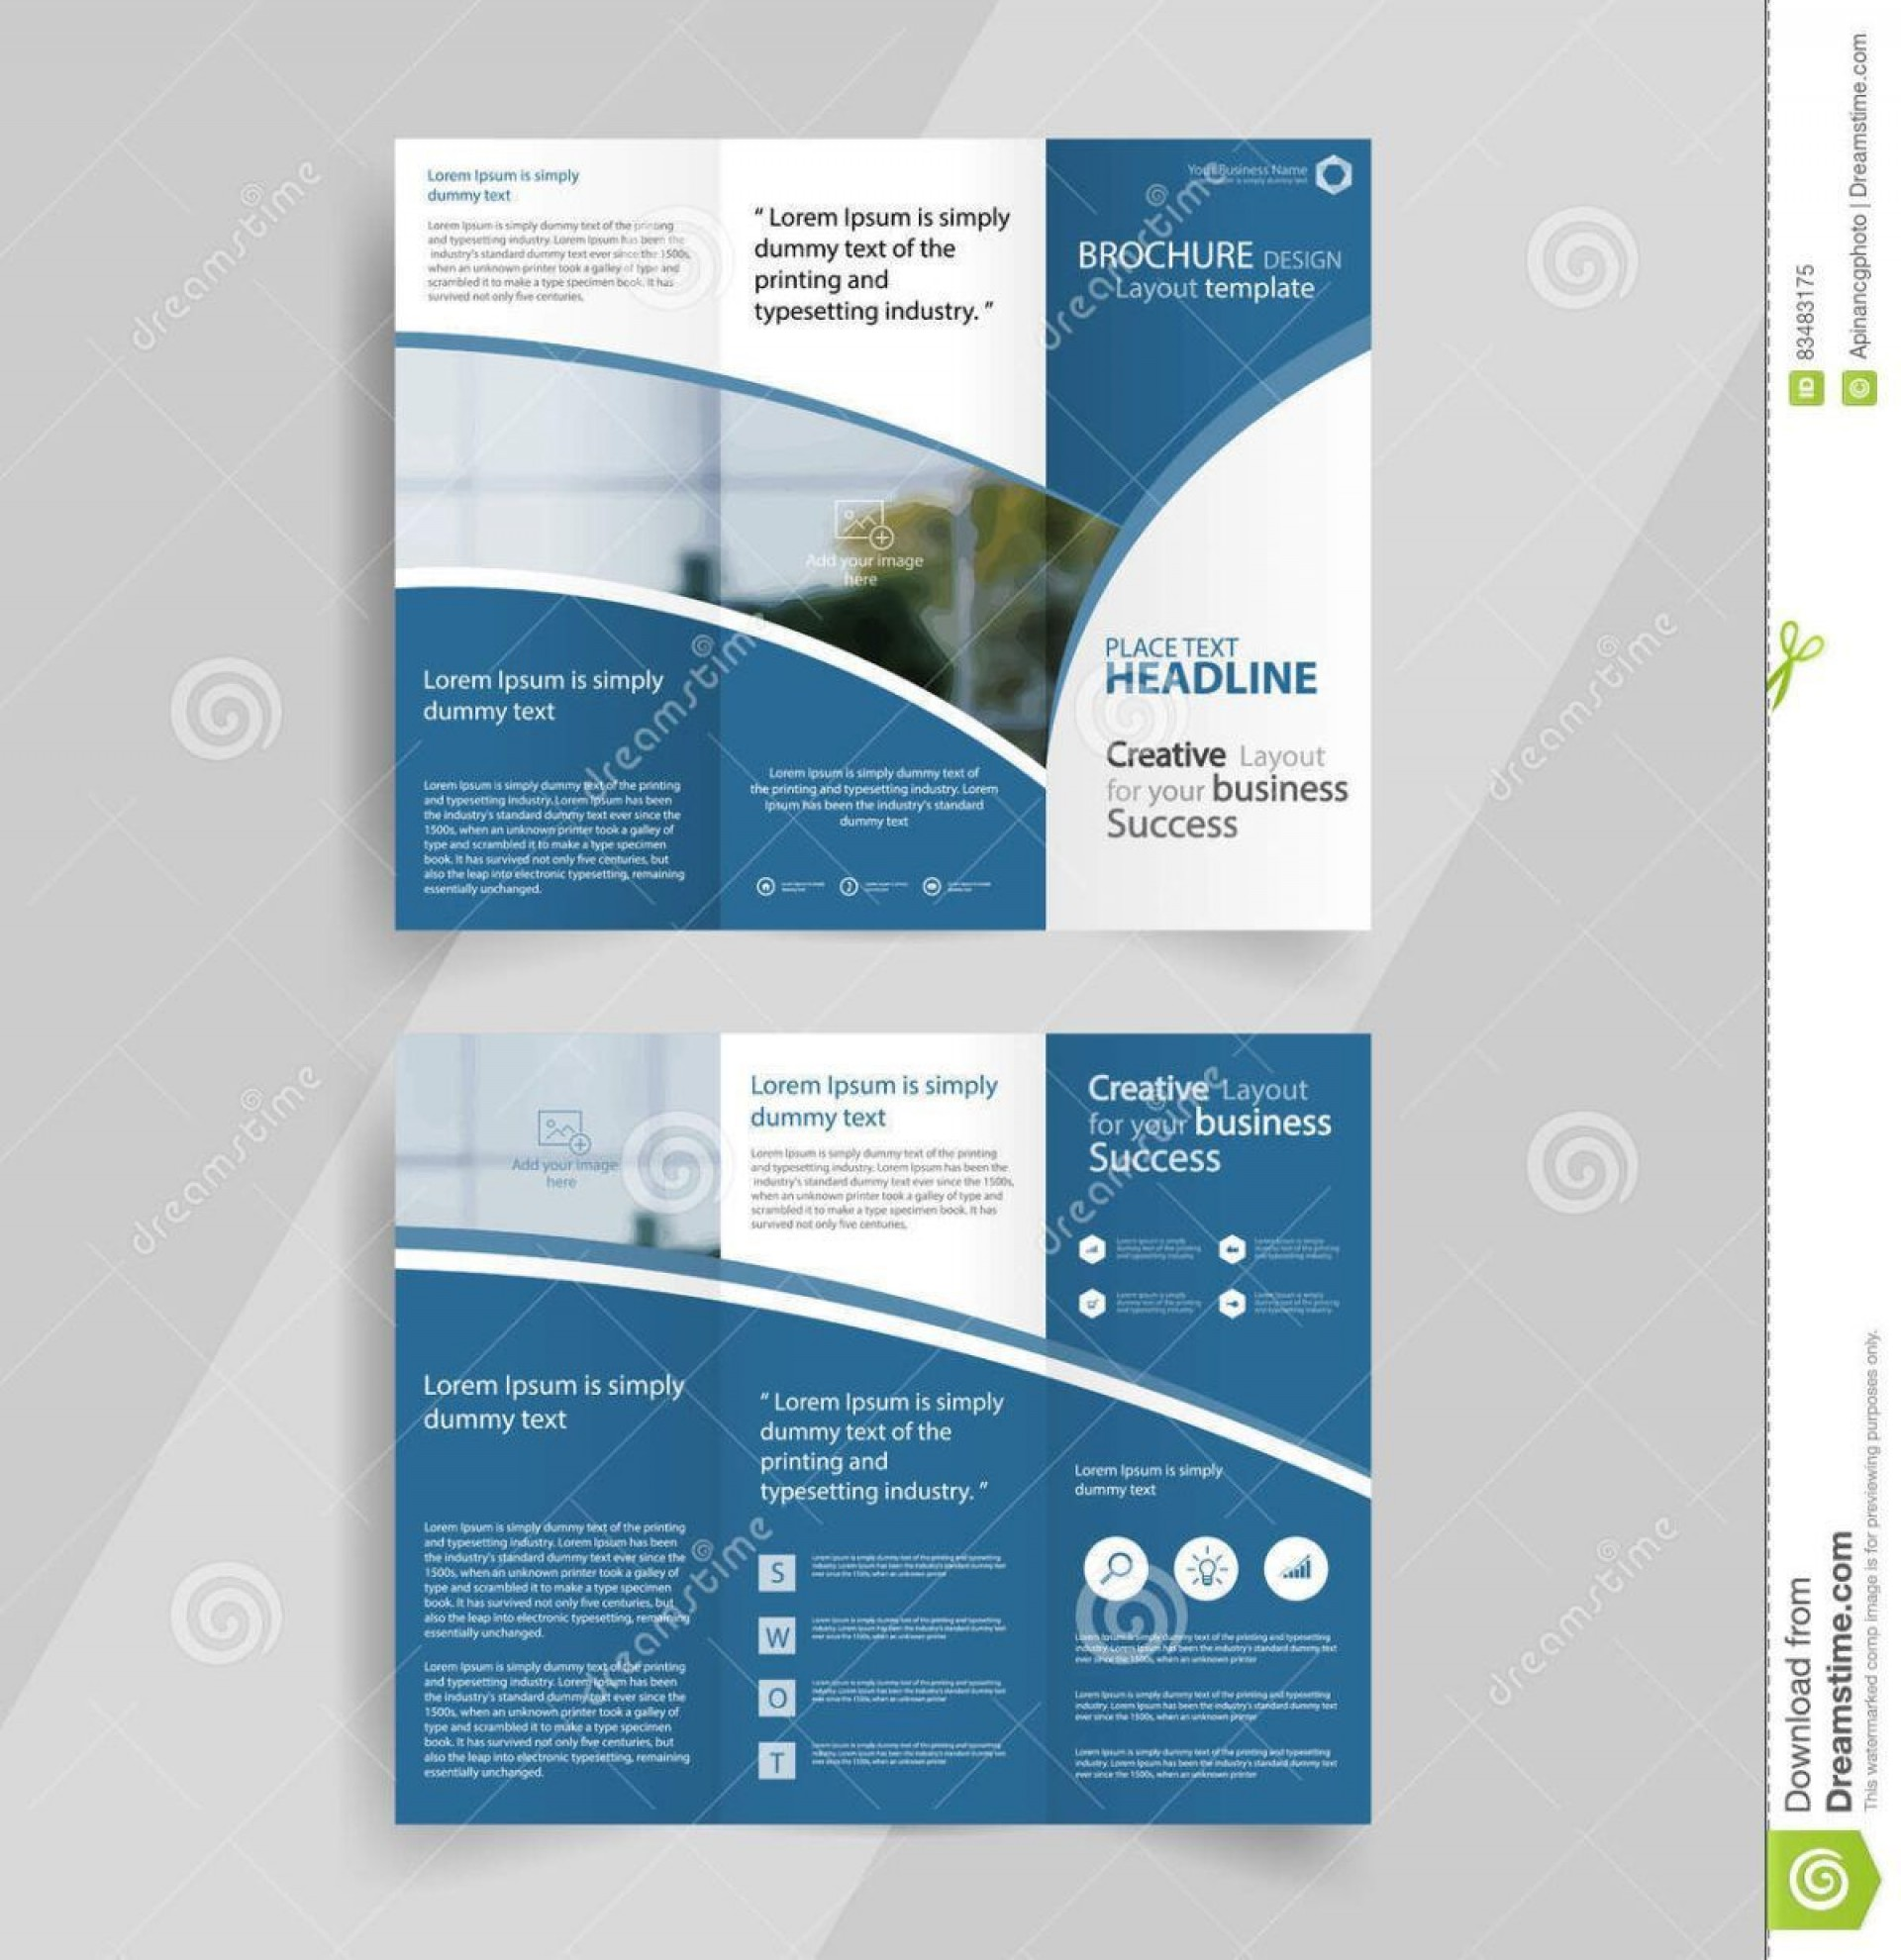 003 Marvelou Brochure Template Microsoft Word Free Tri Fold Concept  Blank For 2010 Download1920